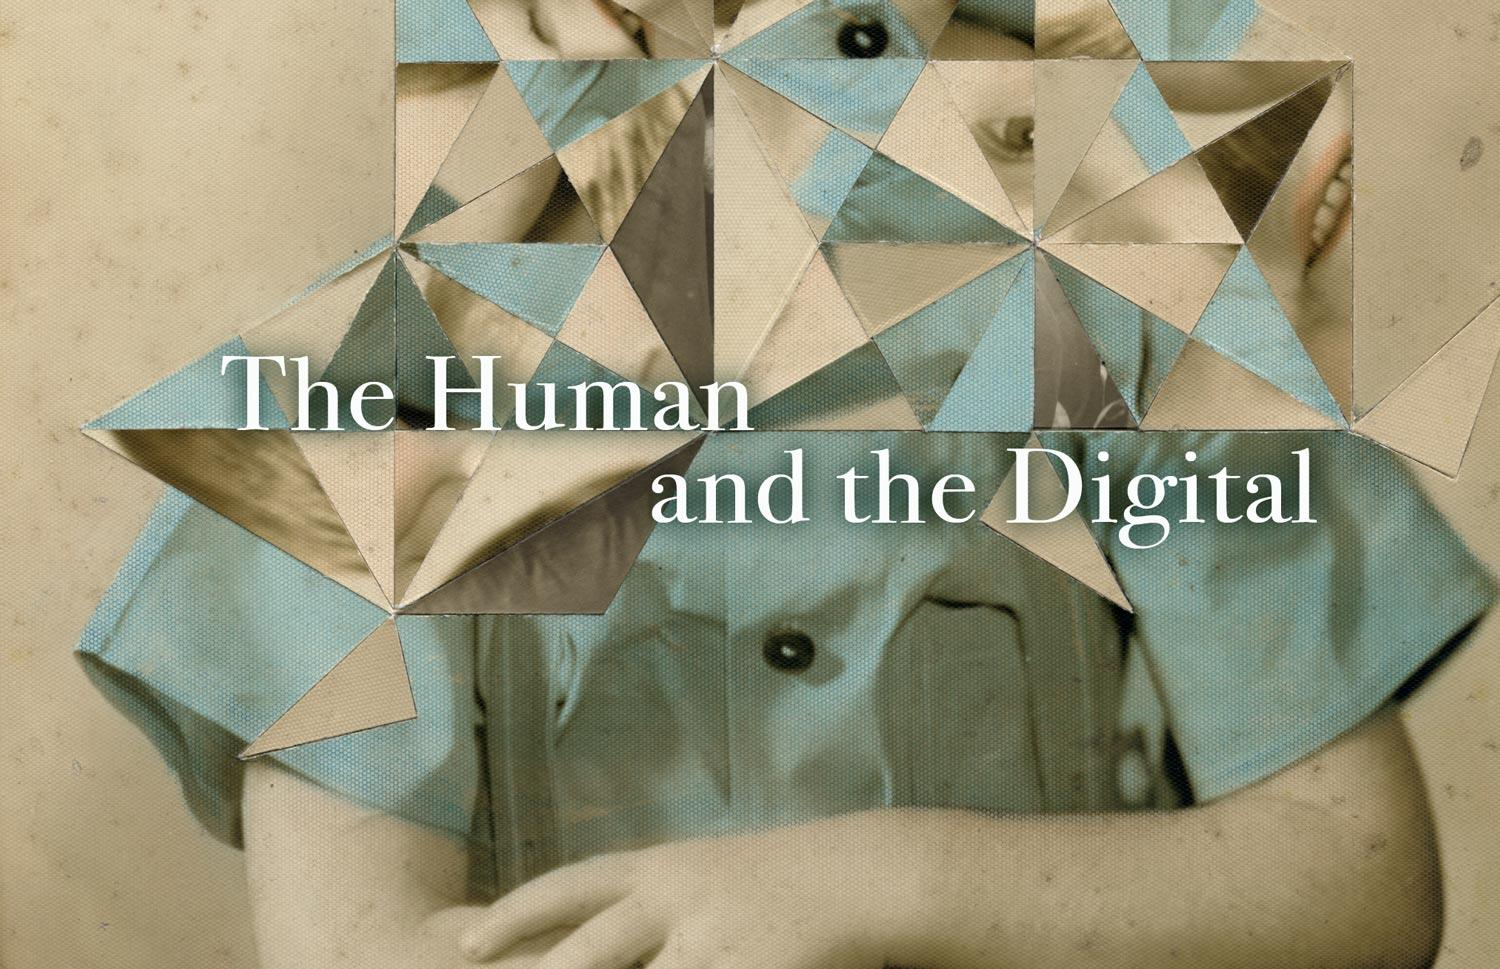 The Human and the Digital: New From The Hedgehog Review This Spring